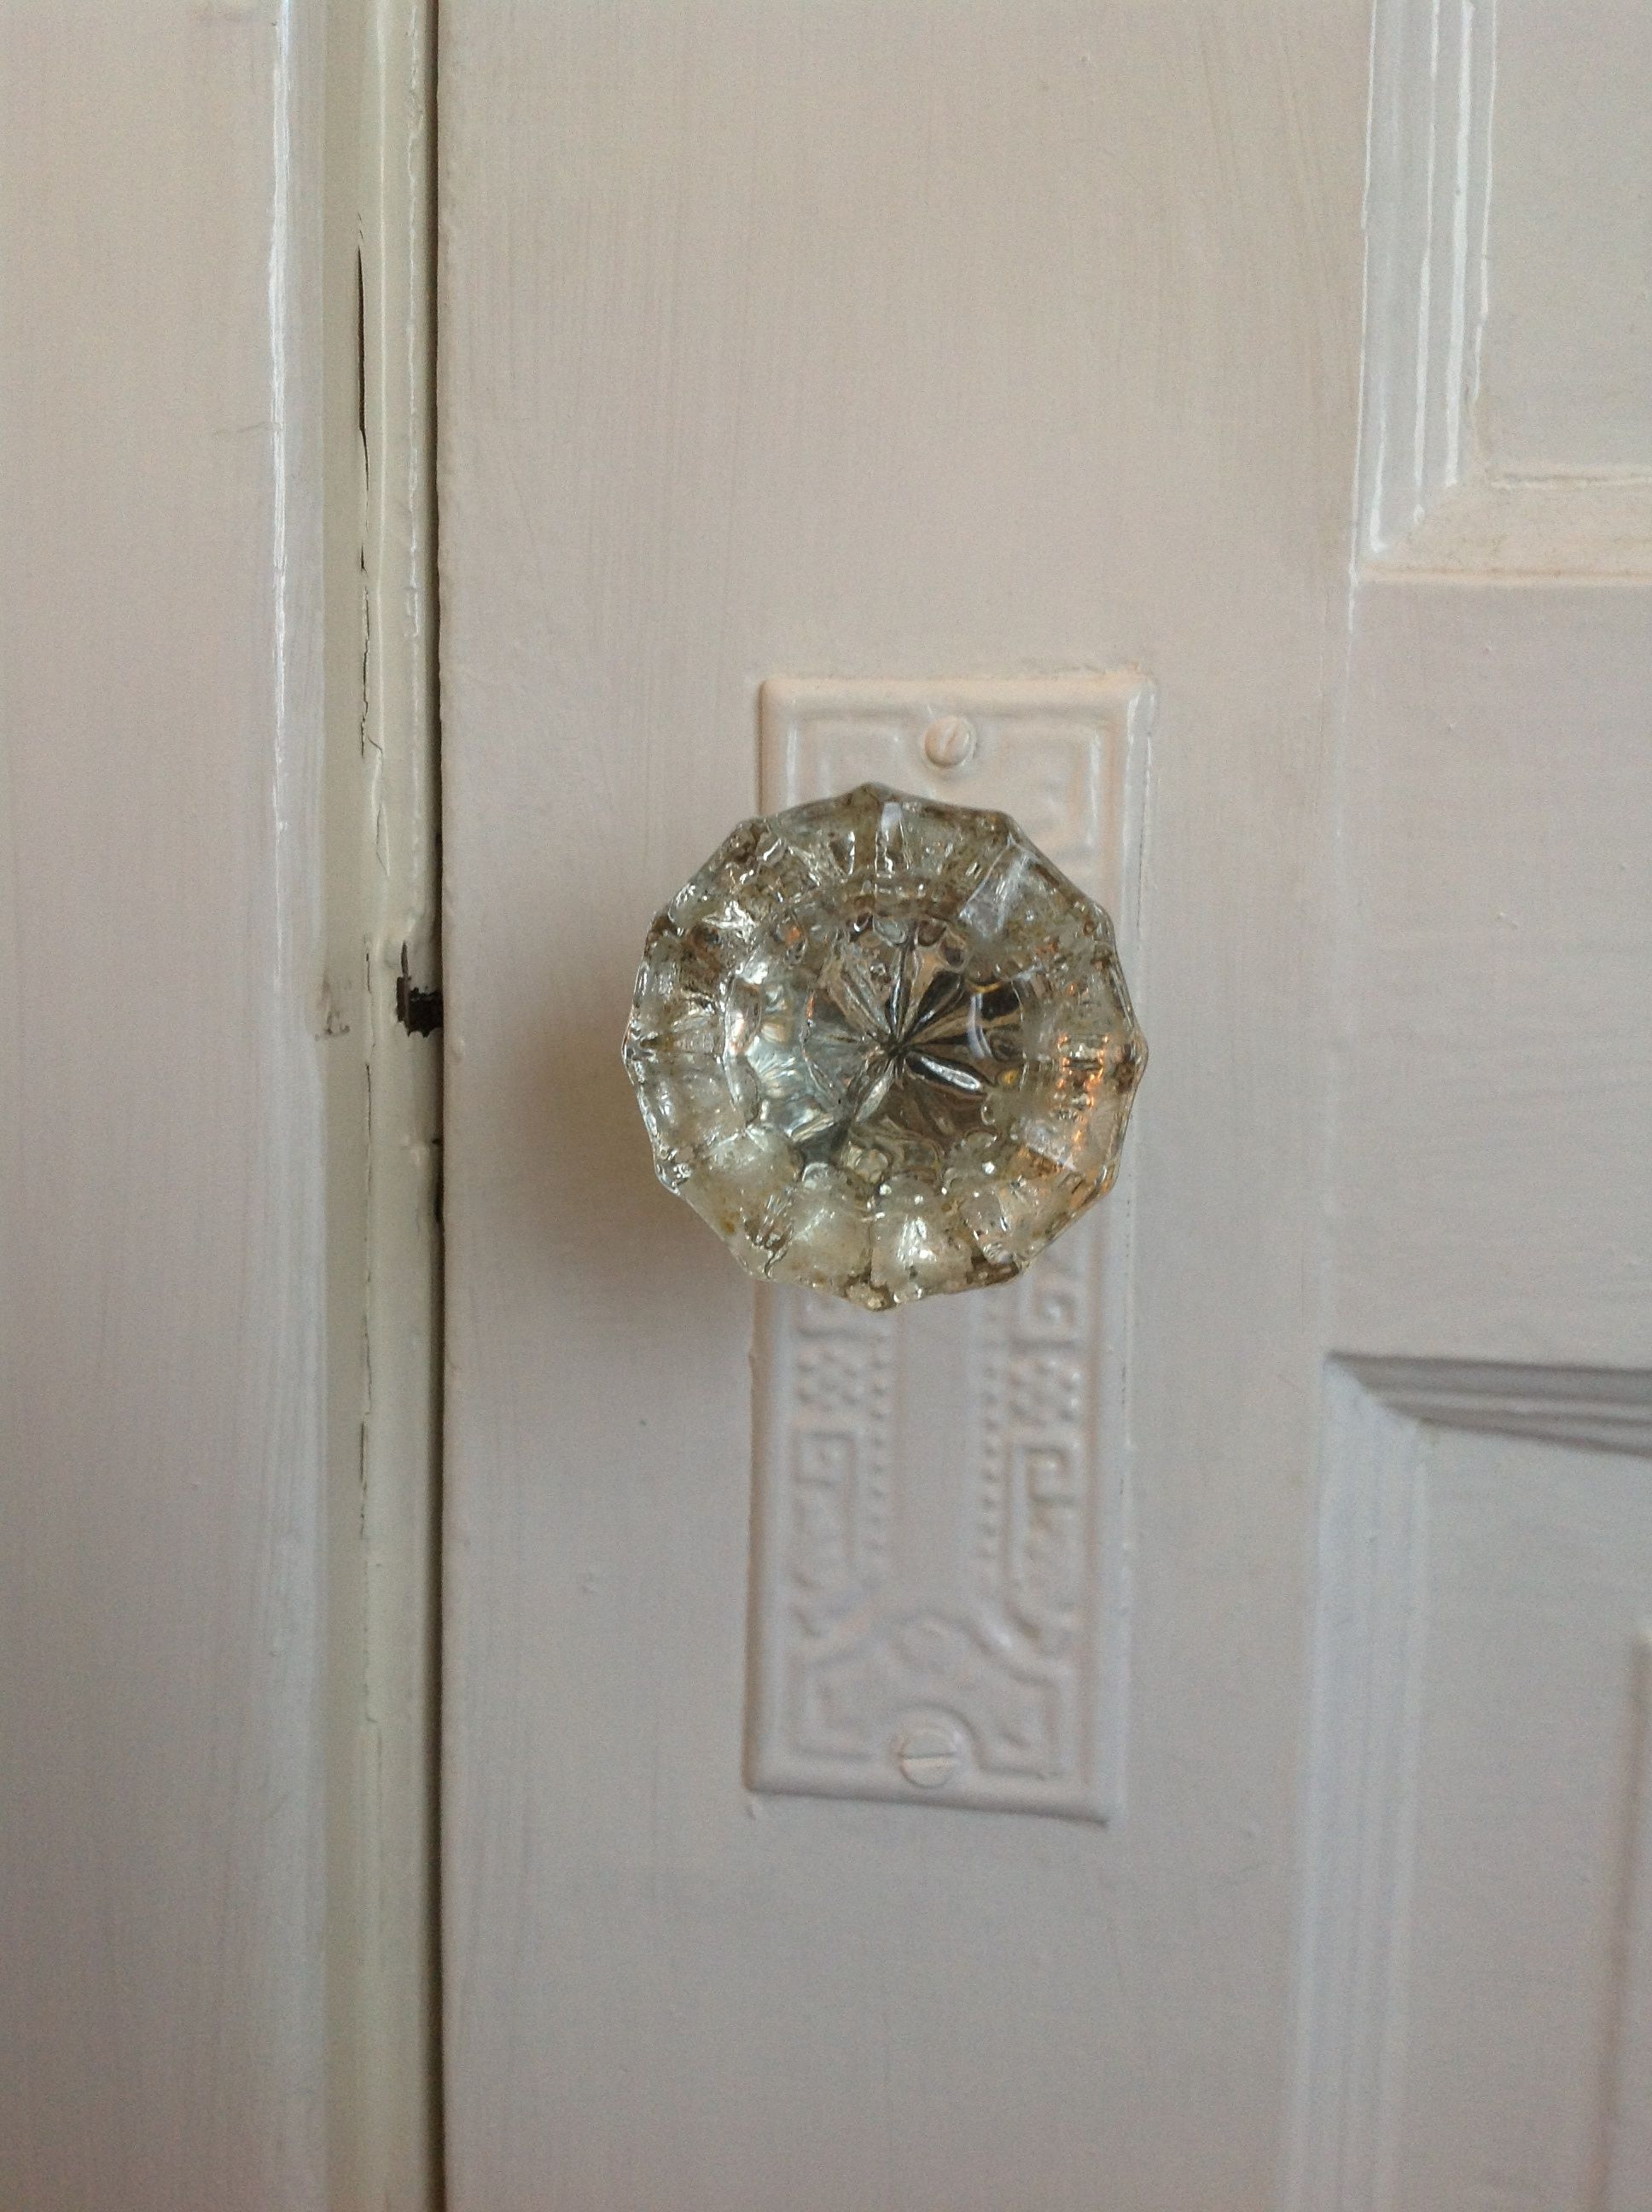 crystal glass door knob. Old farm house details. We had these in the house I grew up in.